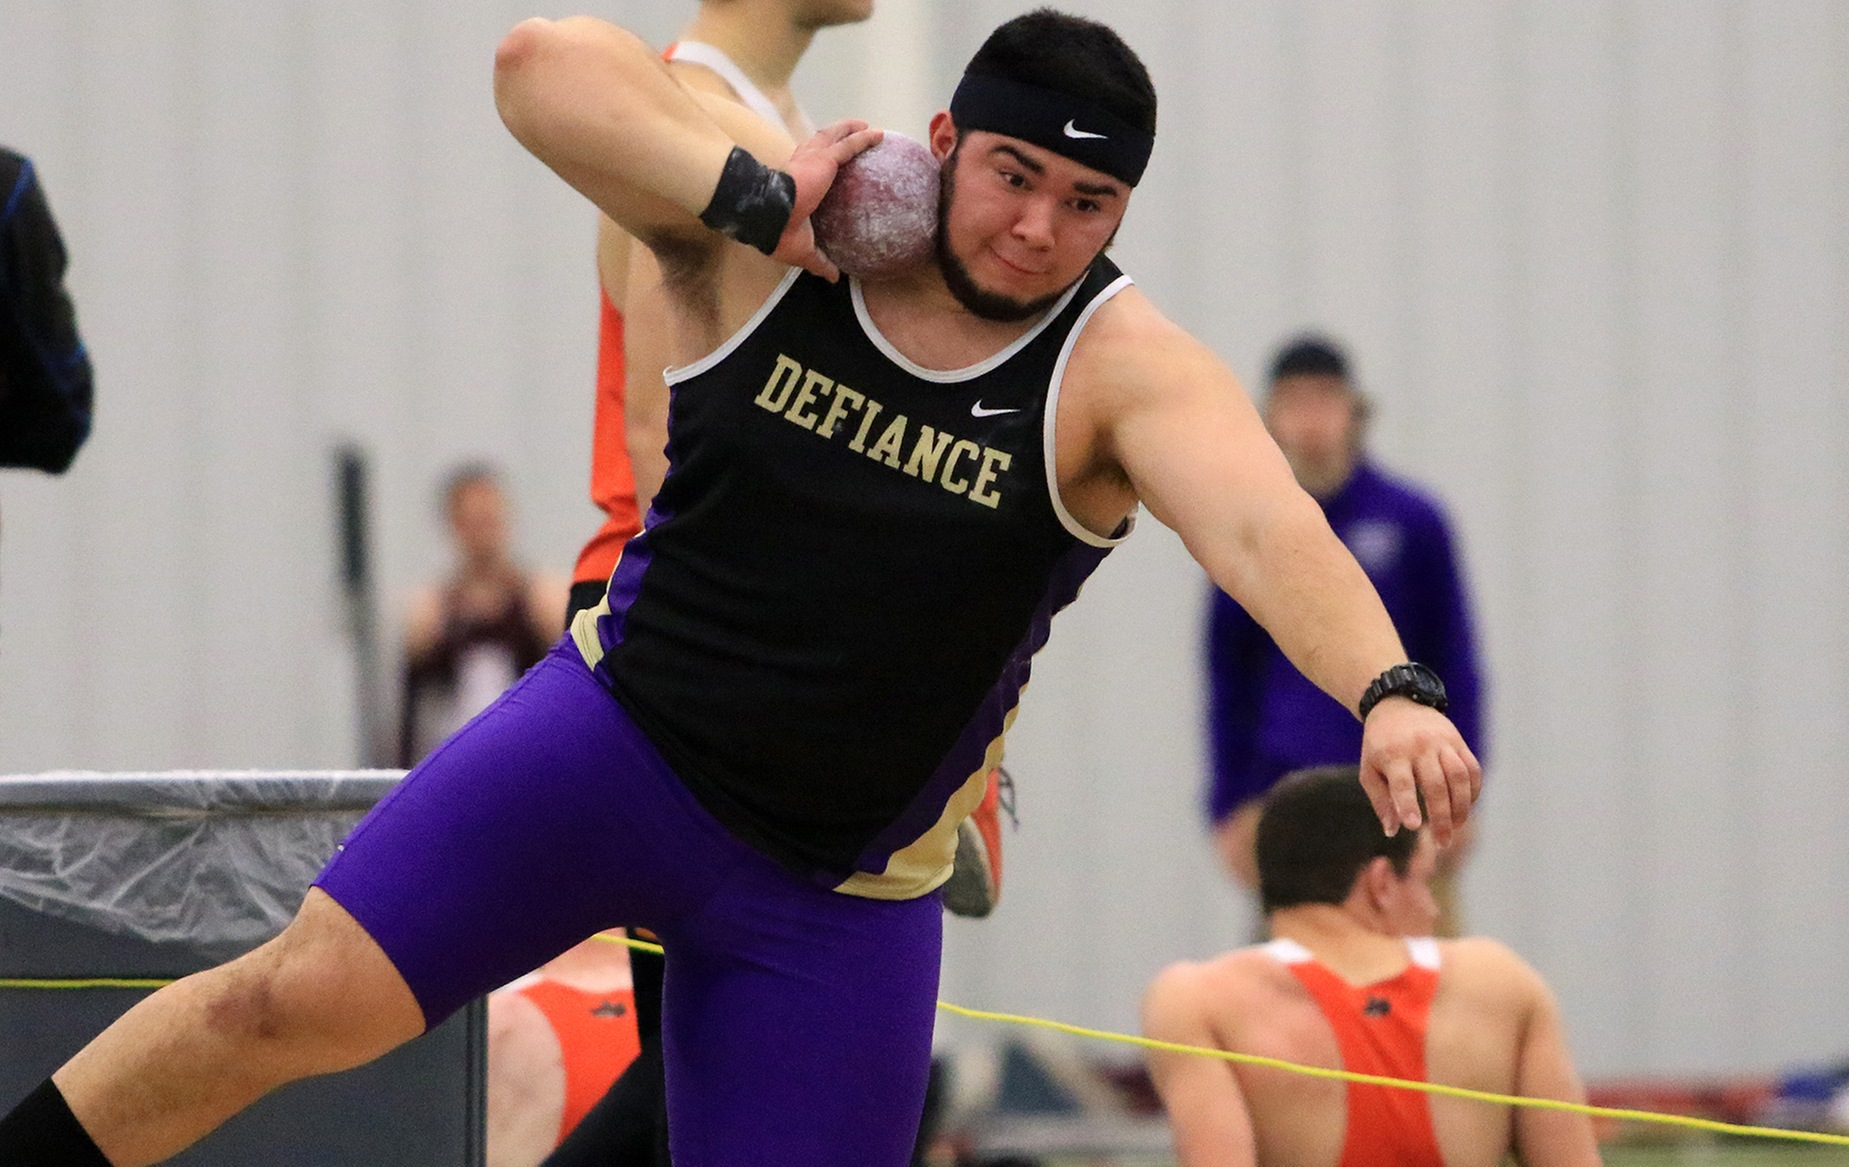 Castillo Takes Fourth in Shot Put at HCAC Championships